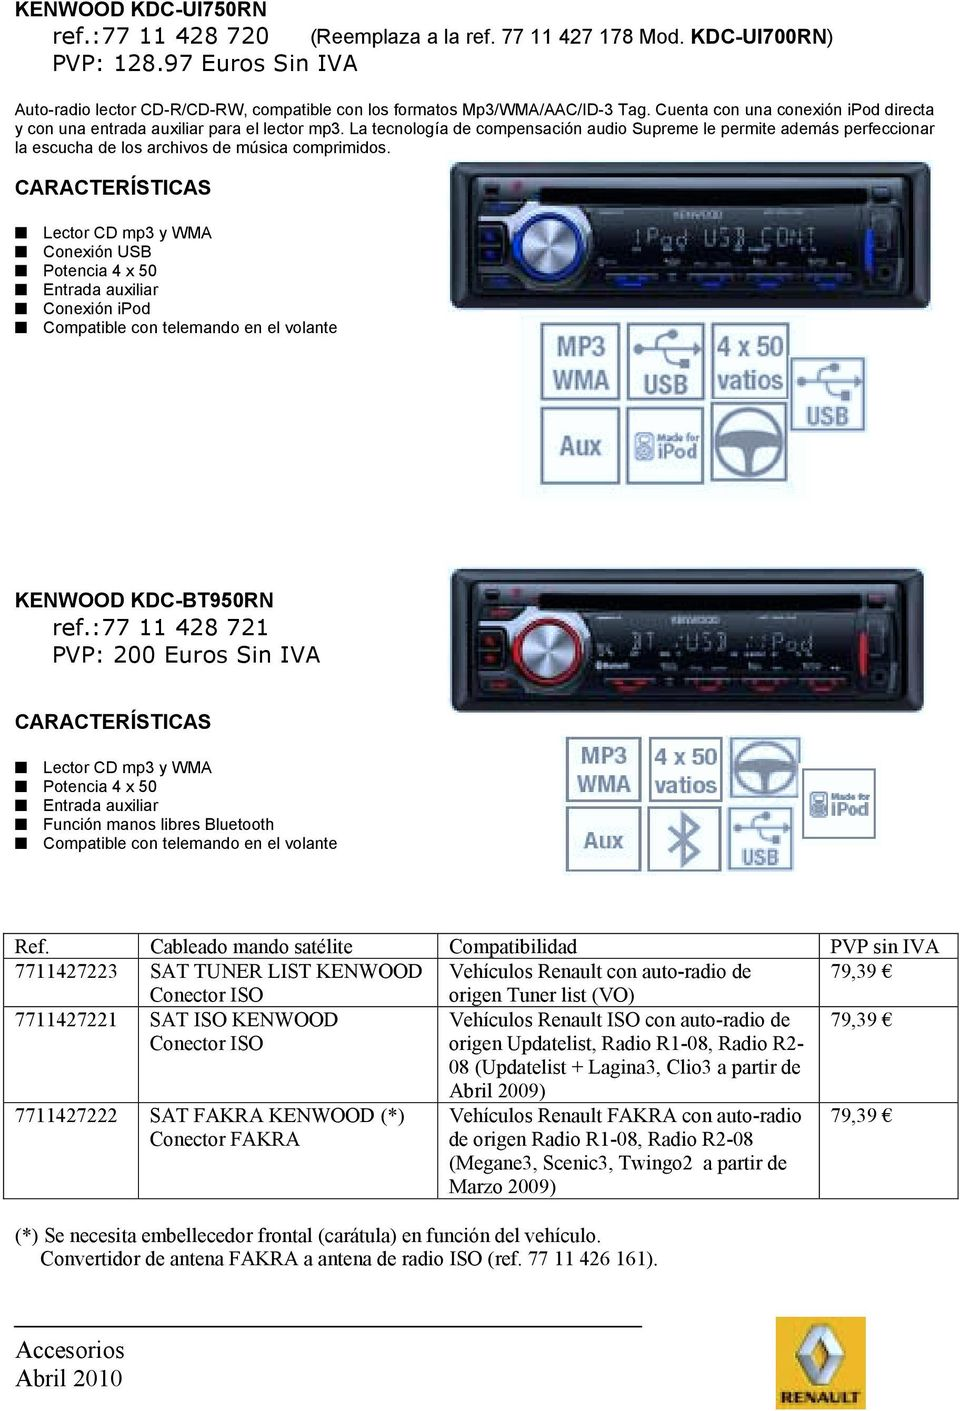 how to unselect a radio box in pdf